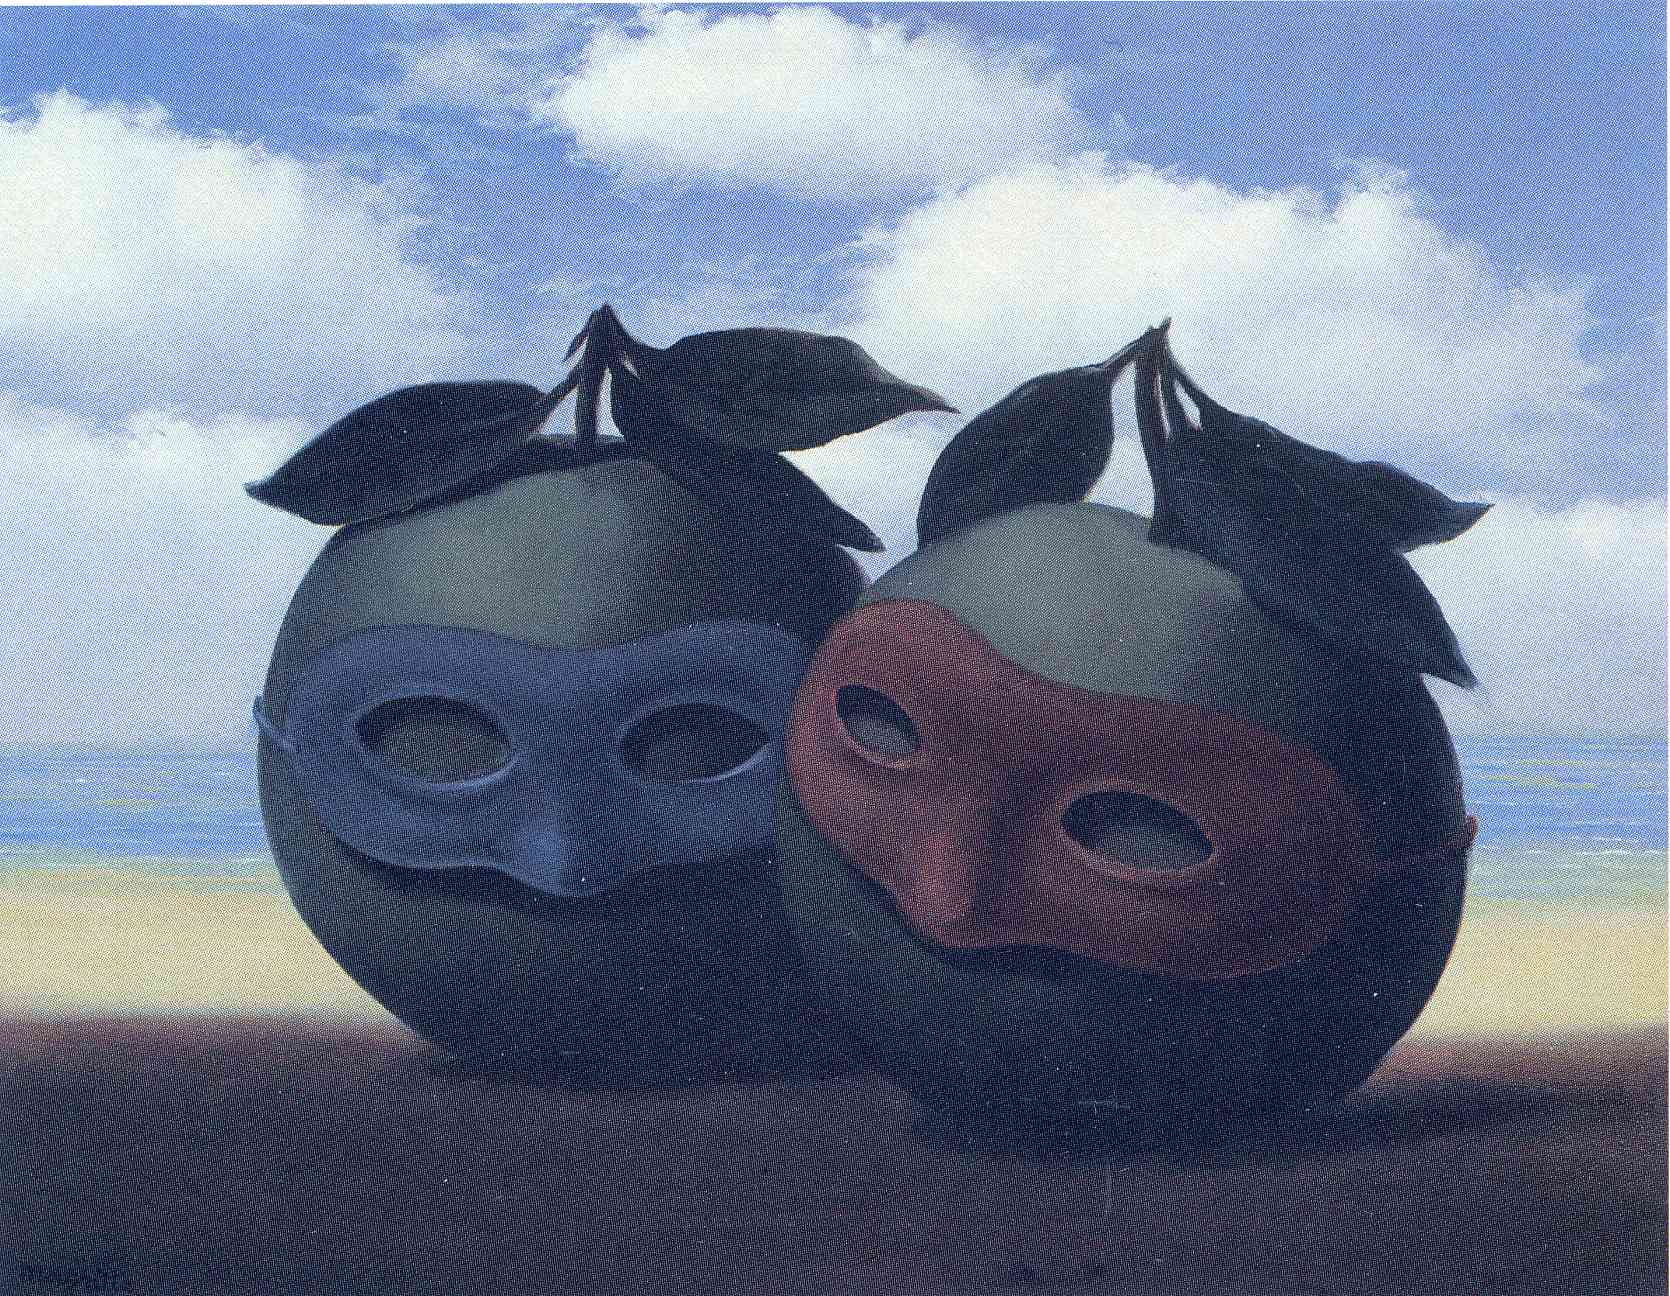 The hesitation waltz, 1950 - Rene Magritte - WikiArt.org